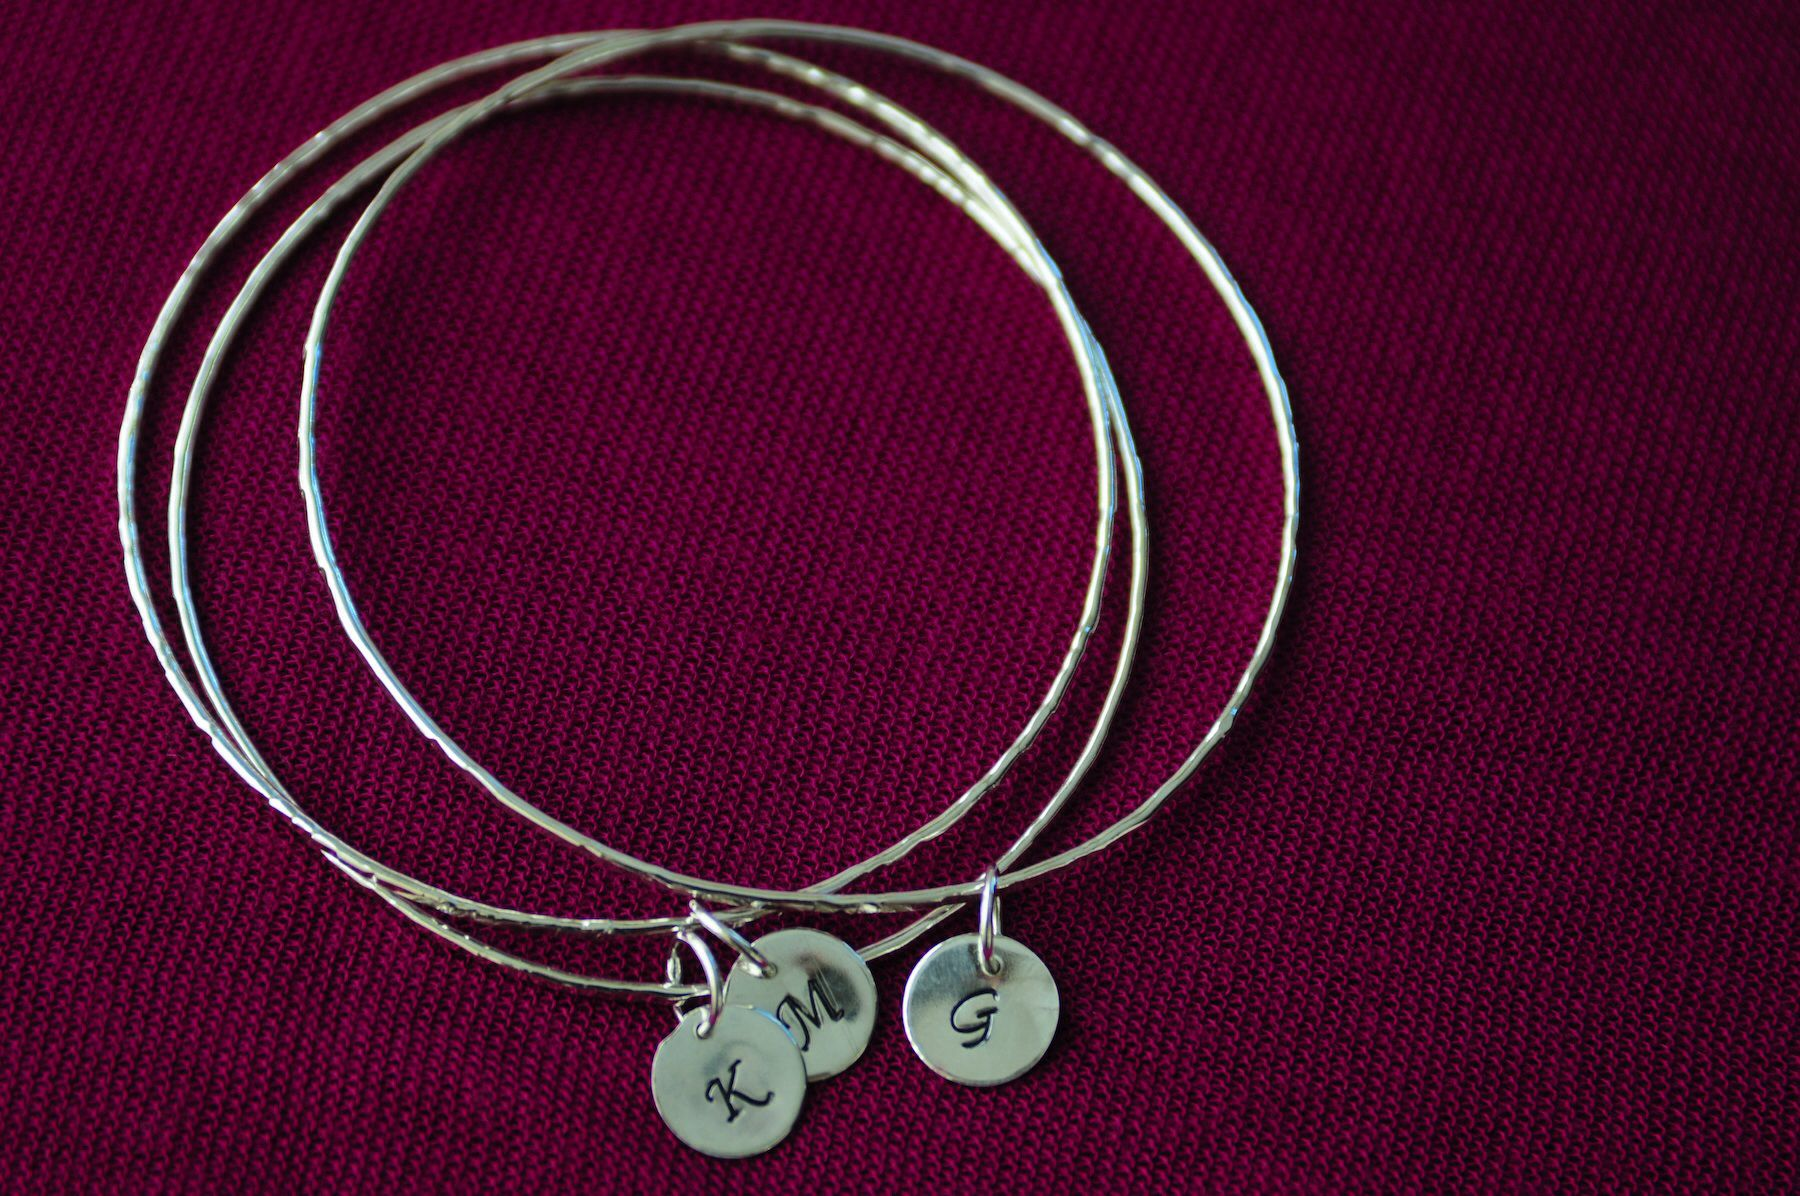 Sterling silver bangles with initial tag .www.odettealfaro.com